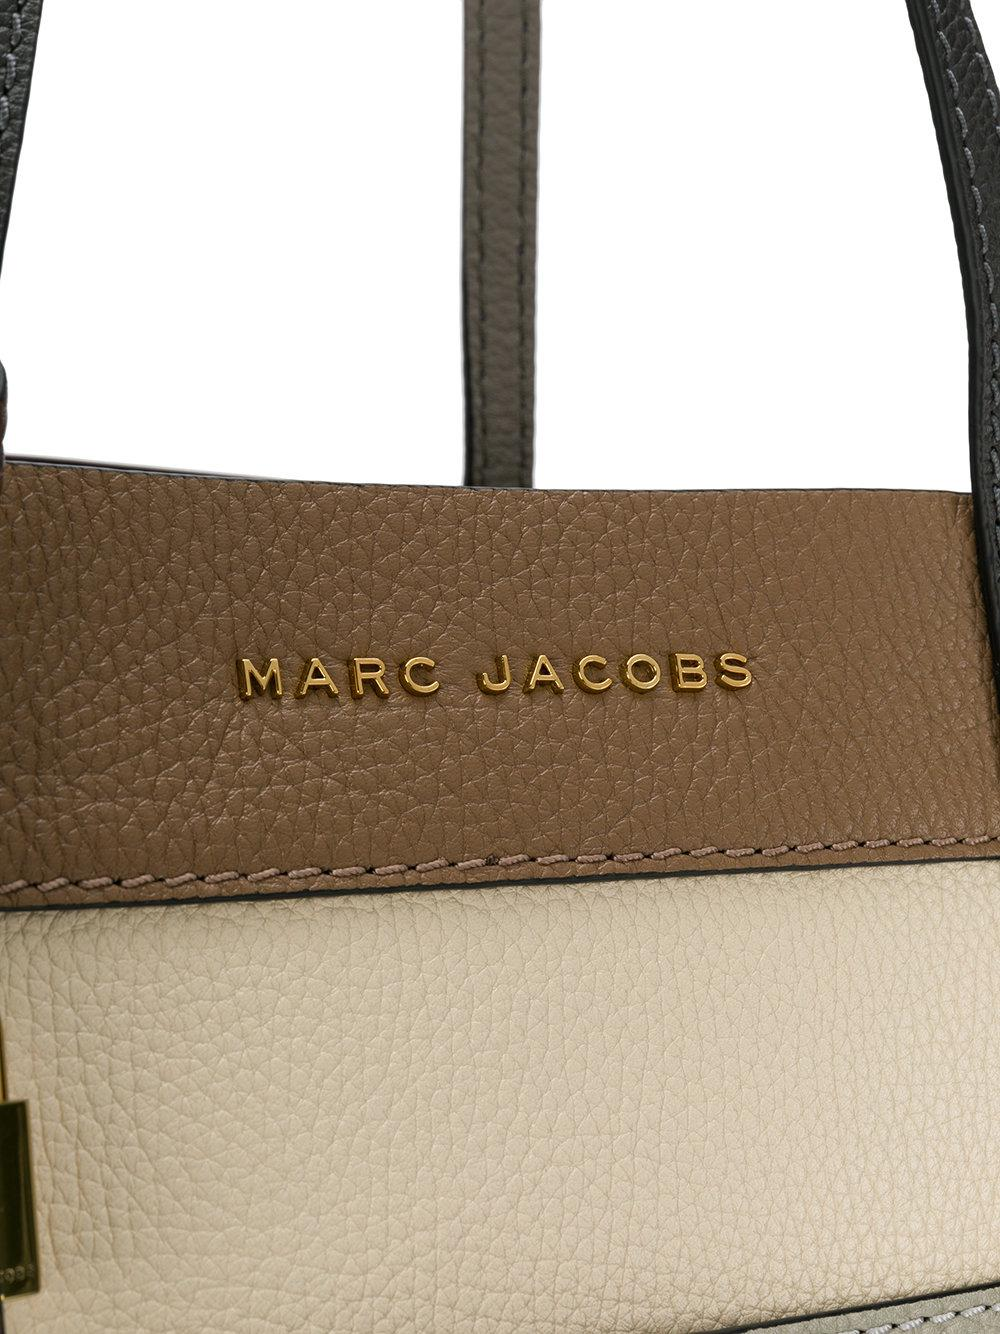 Marc Jacobs Leather The Grind Shopper Tote in Brown